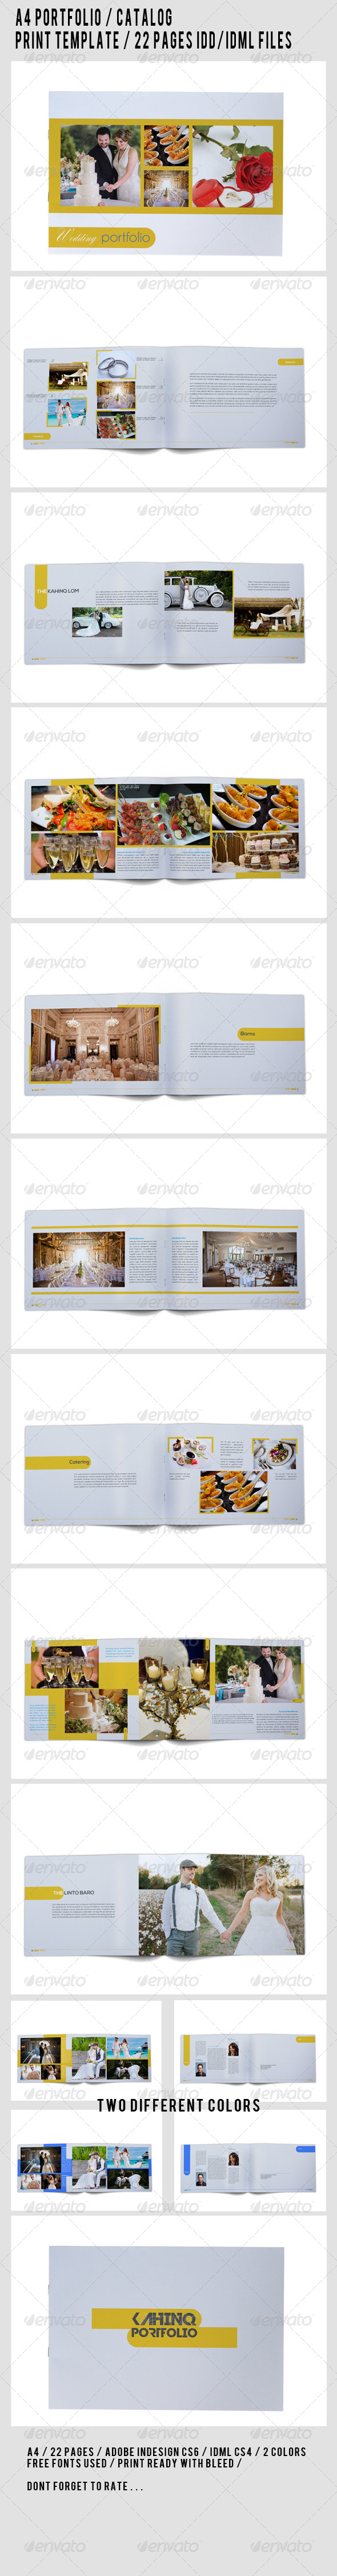 GraphicRiver A4 Portfolio Catalog Template 7781950